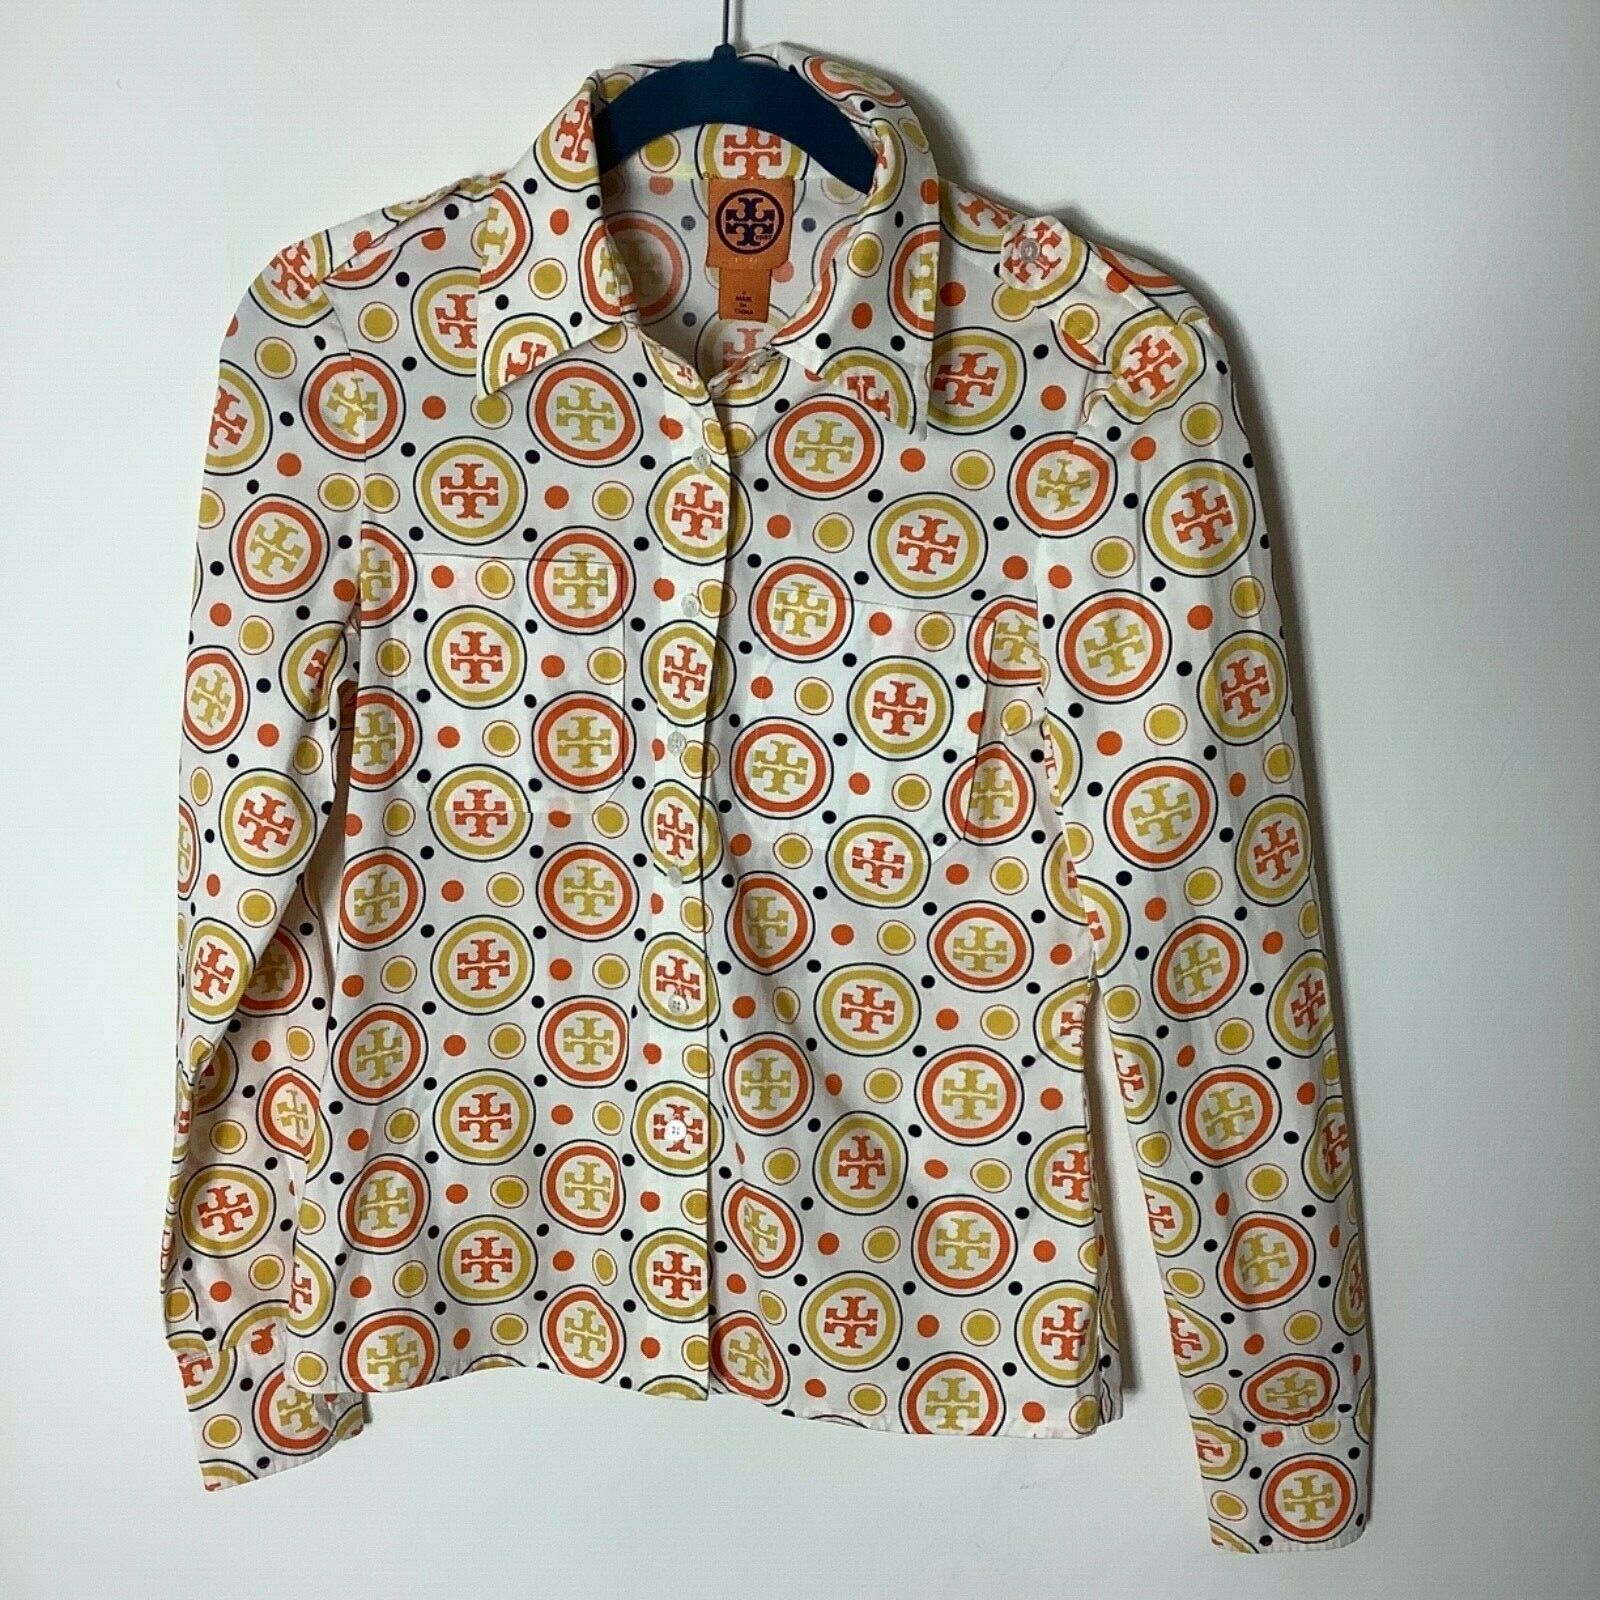 Tory Burch logo hommeches longues bouton bas chemise taille 2